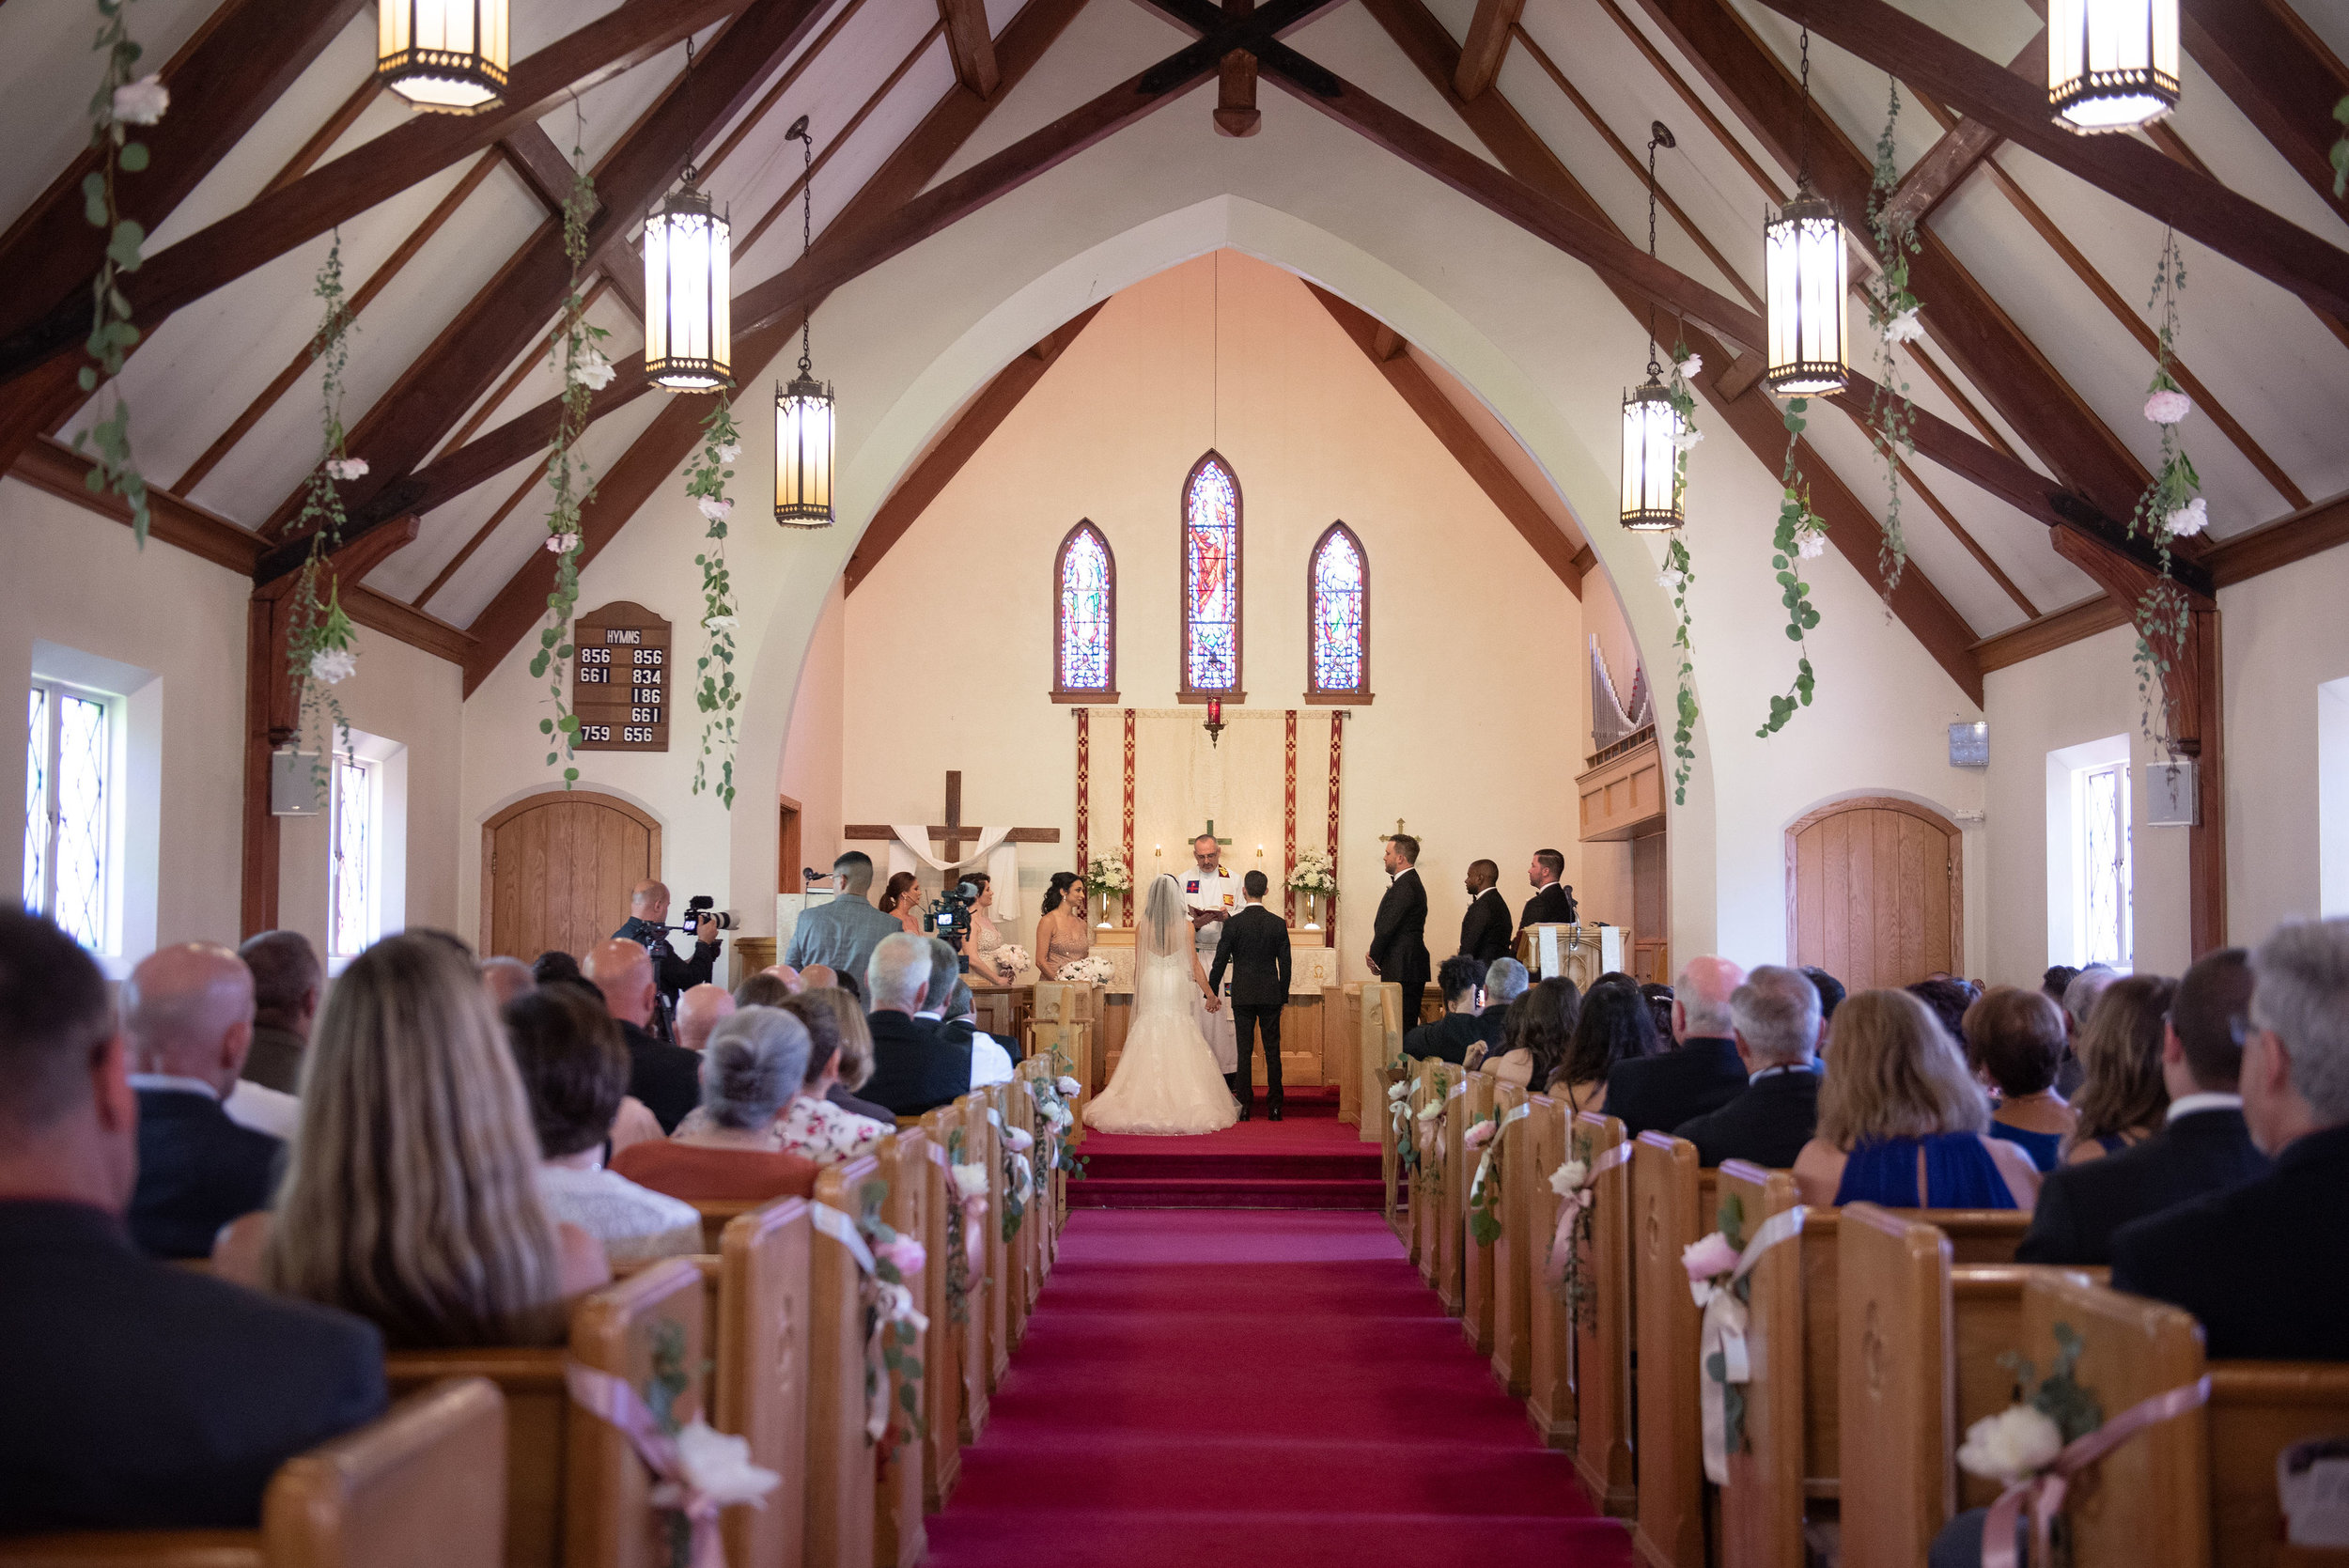 Gethsemane Lutheran Church  Keyport, NJ  May 2019  Photo Credit: Celestina Ando Photography